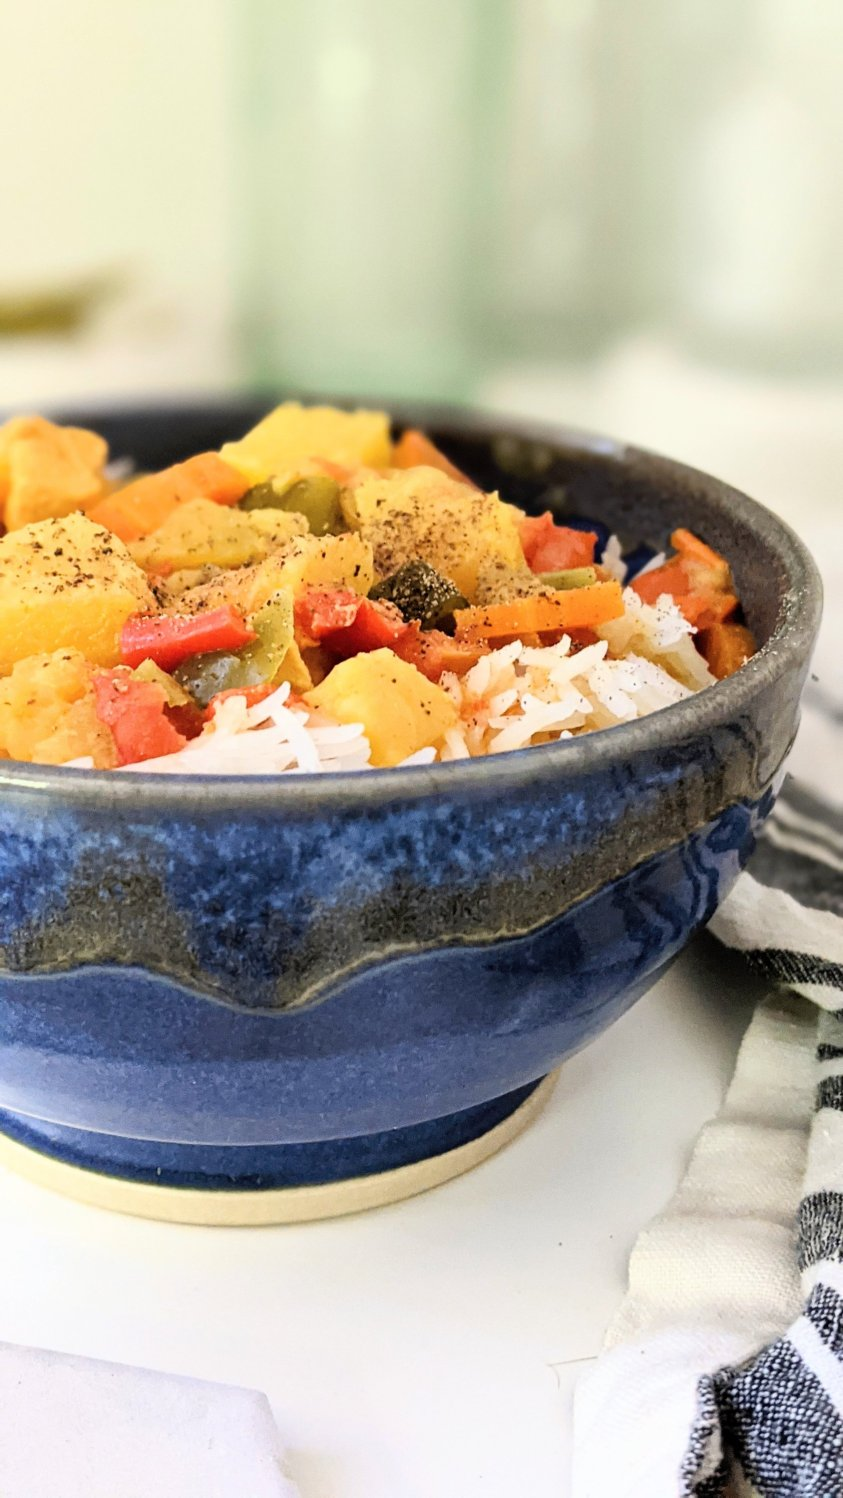 instant pot chicken coconut curry with pineapple and ginger and bell pepper recipes for dinner high protein dairy free chicken recipes no dairy gluten free healthy pressure cooker chicken pineapple curry instant pot